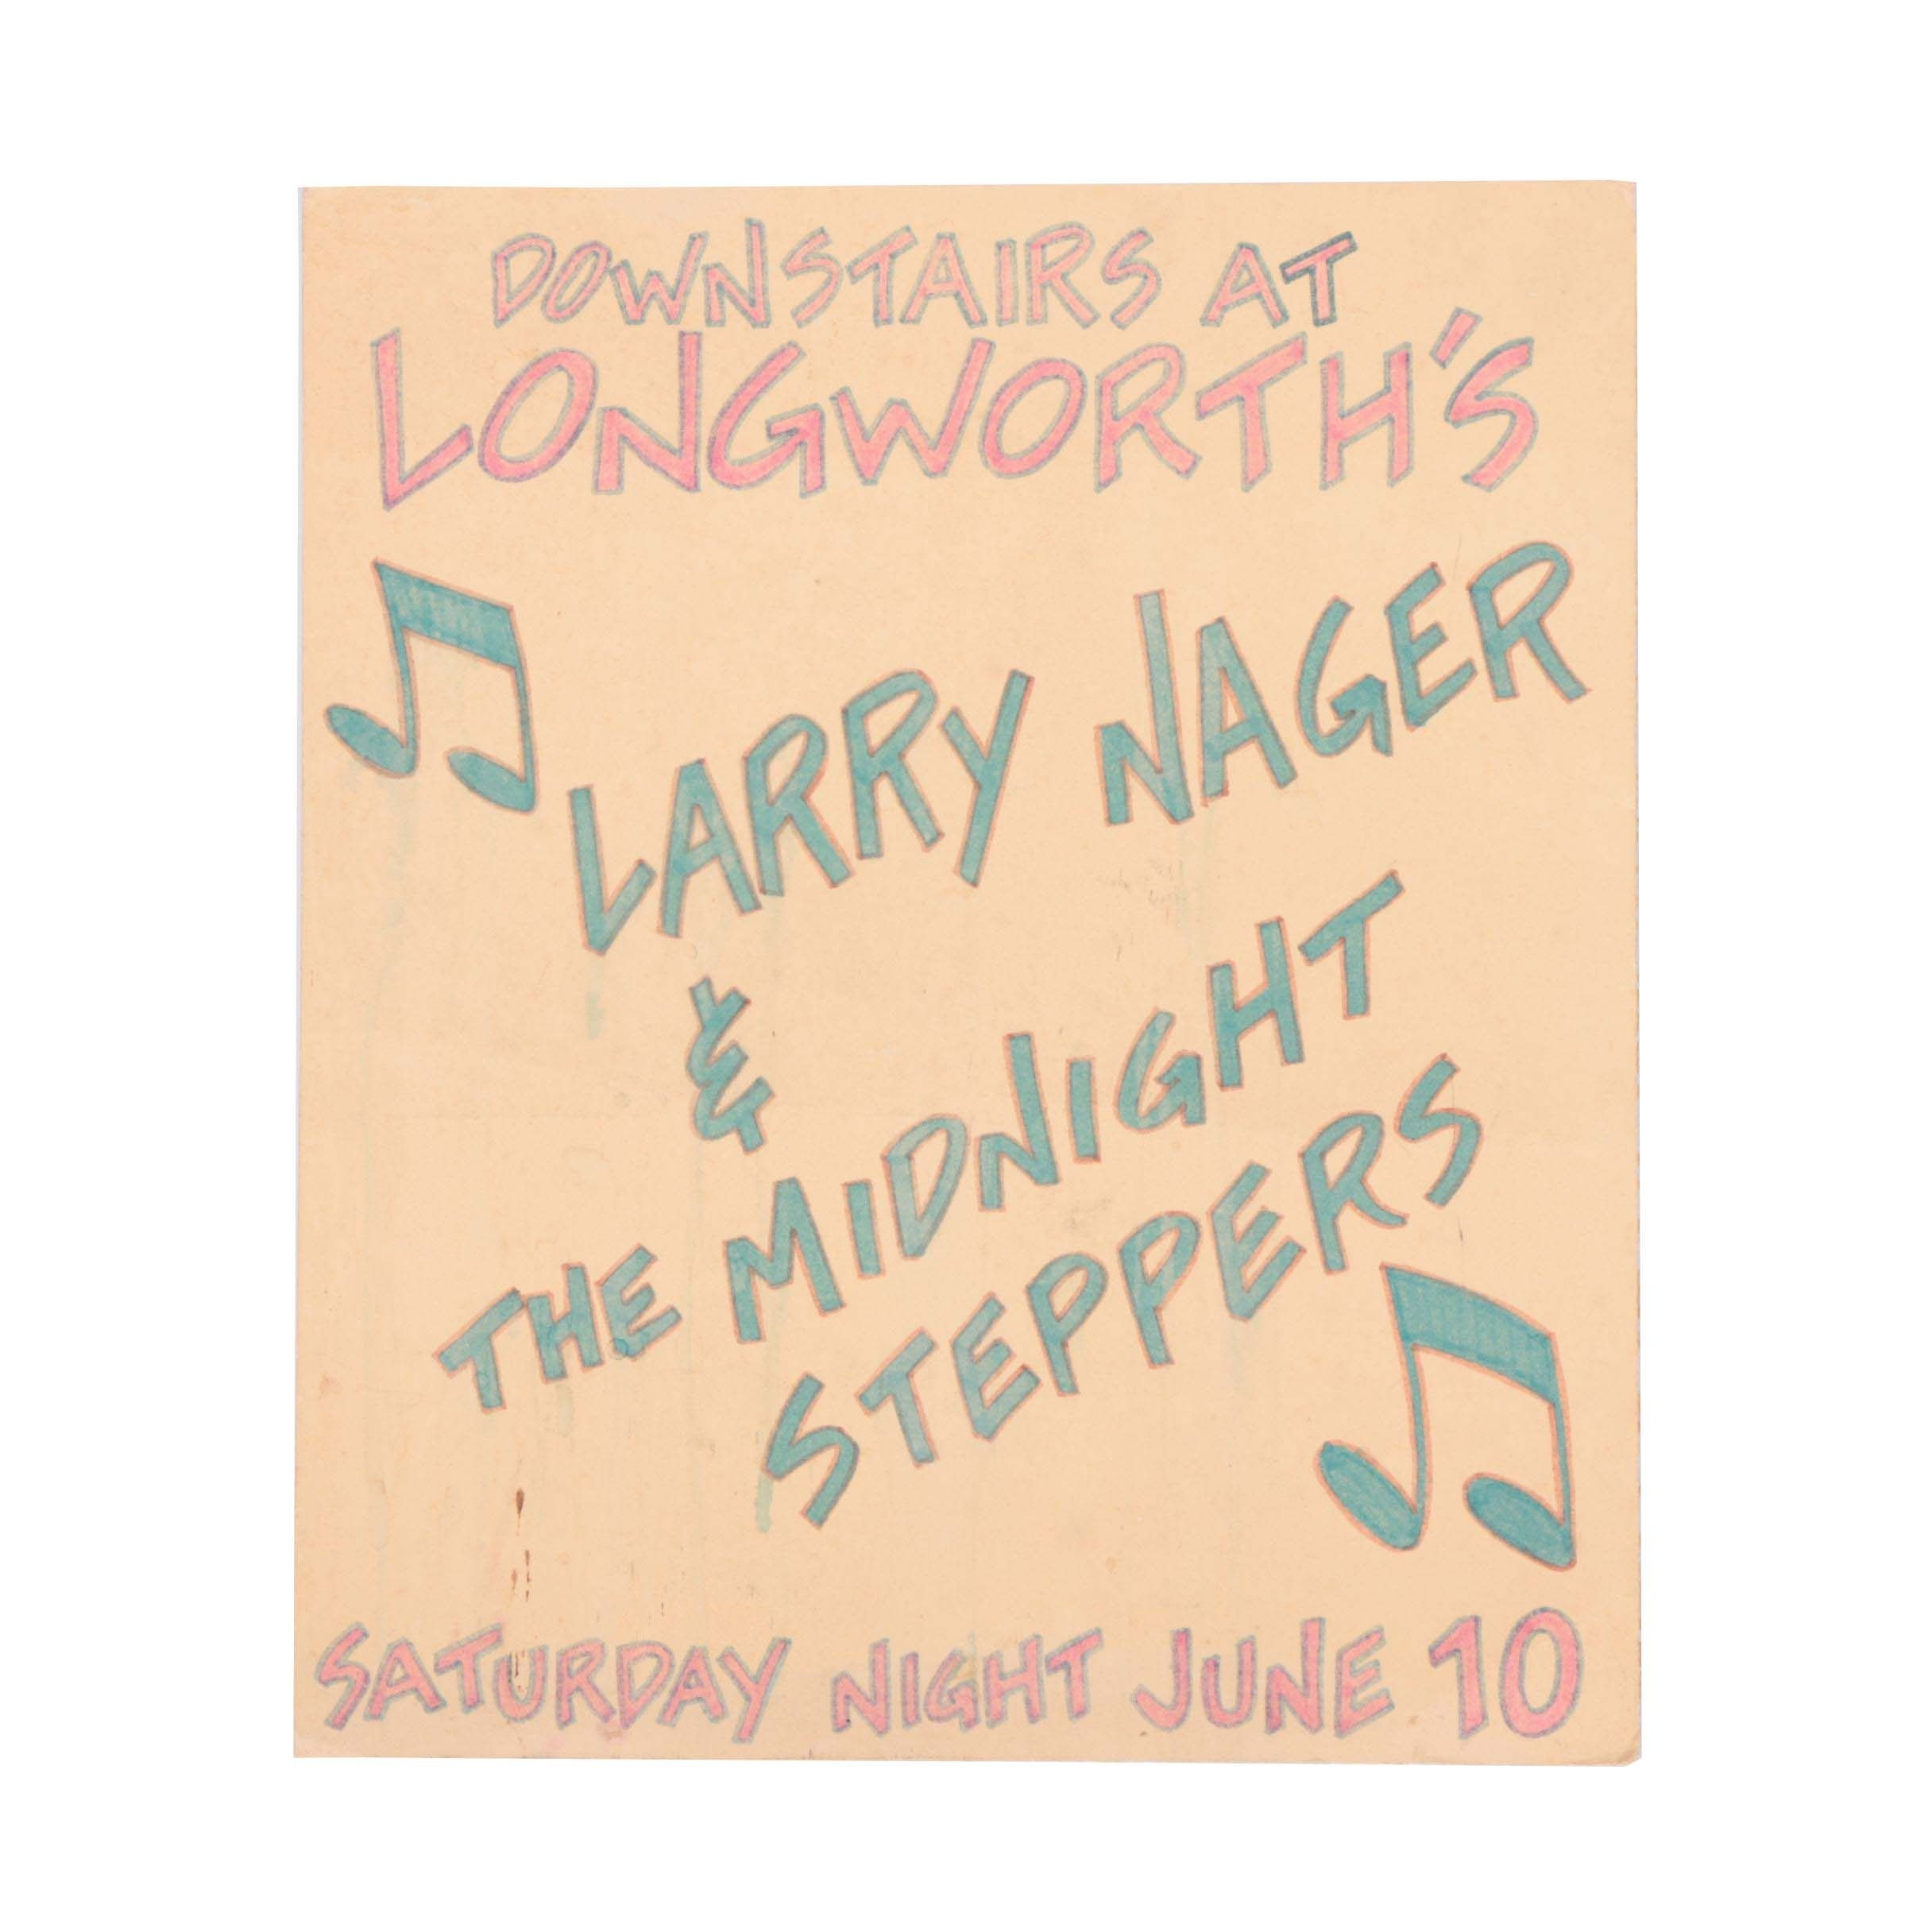 Cardboard Poster for Larry Nager & The Midnight Steppers